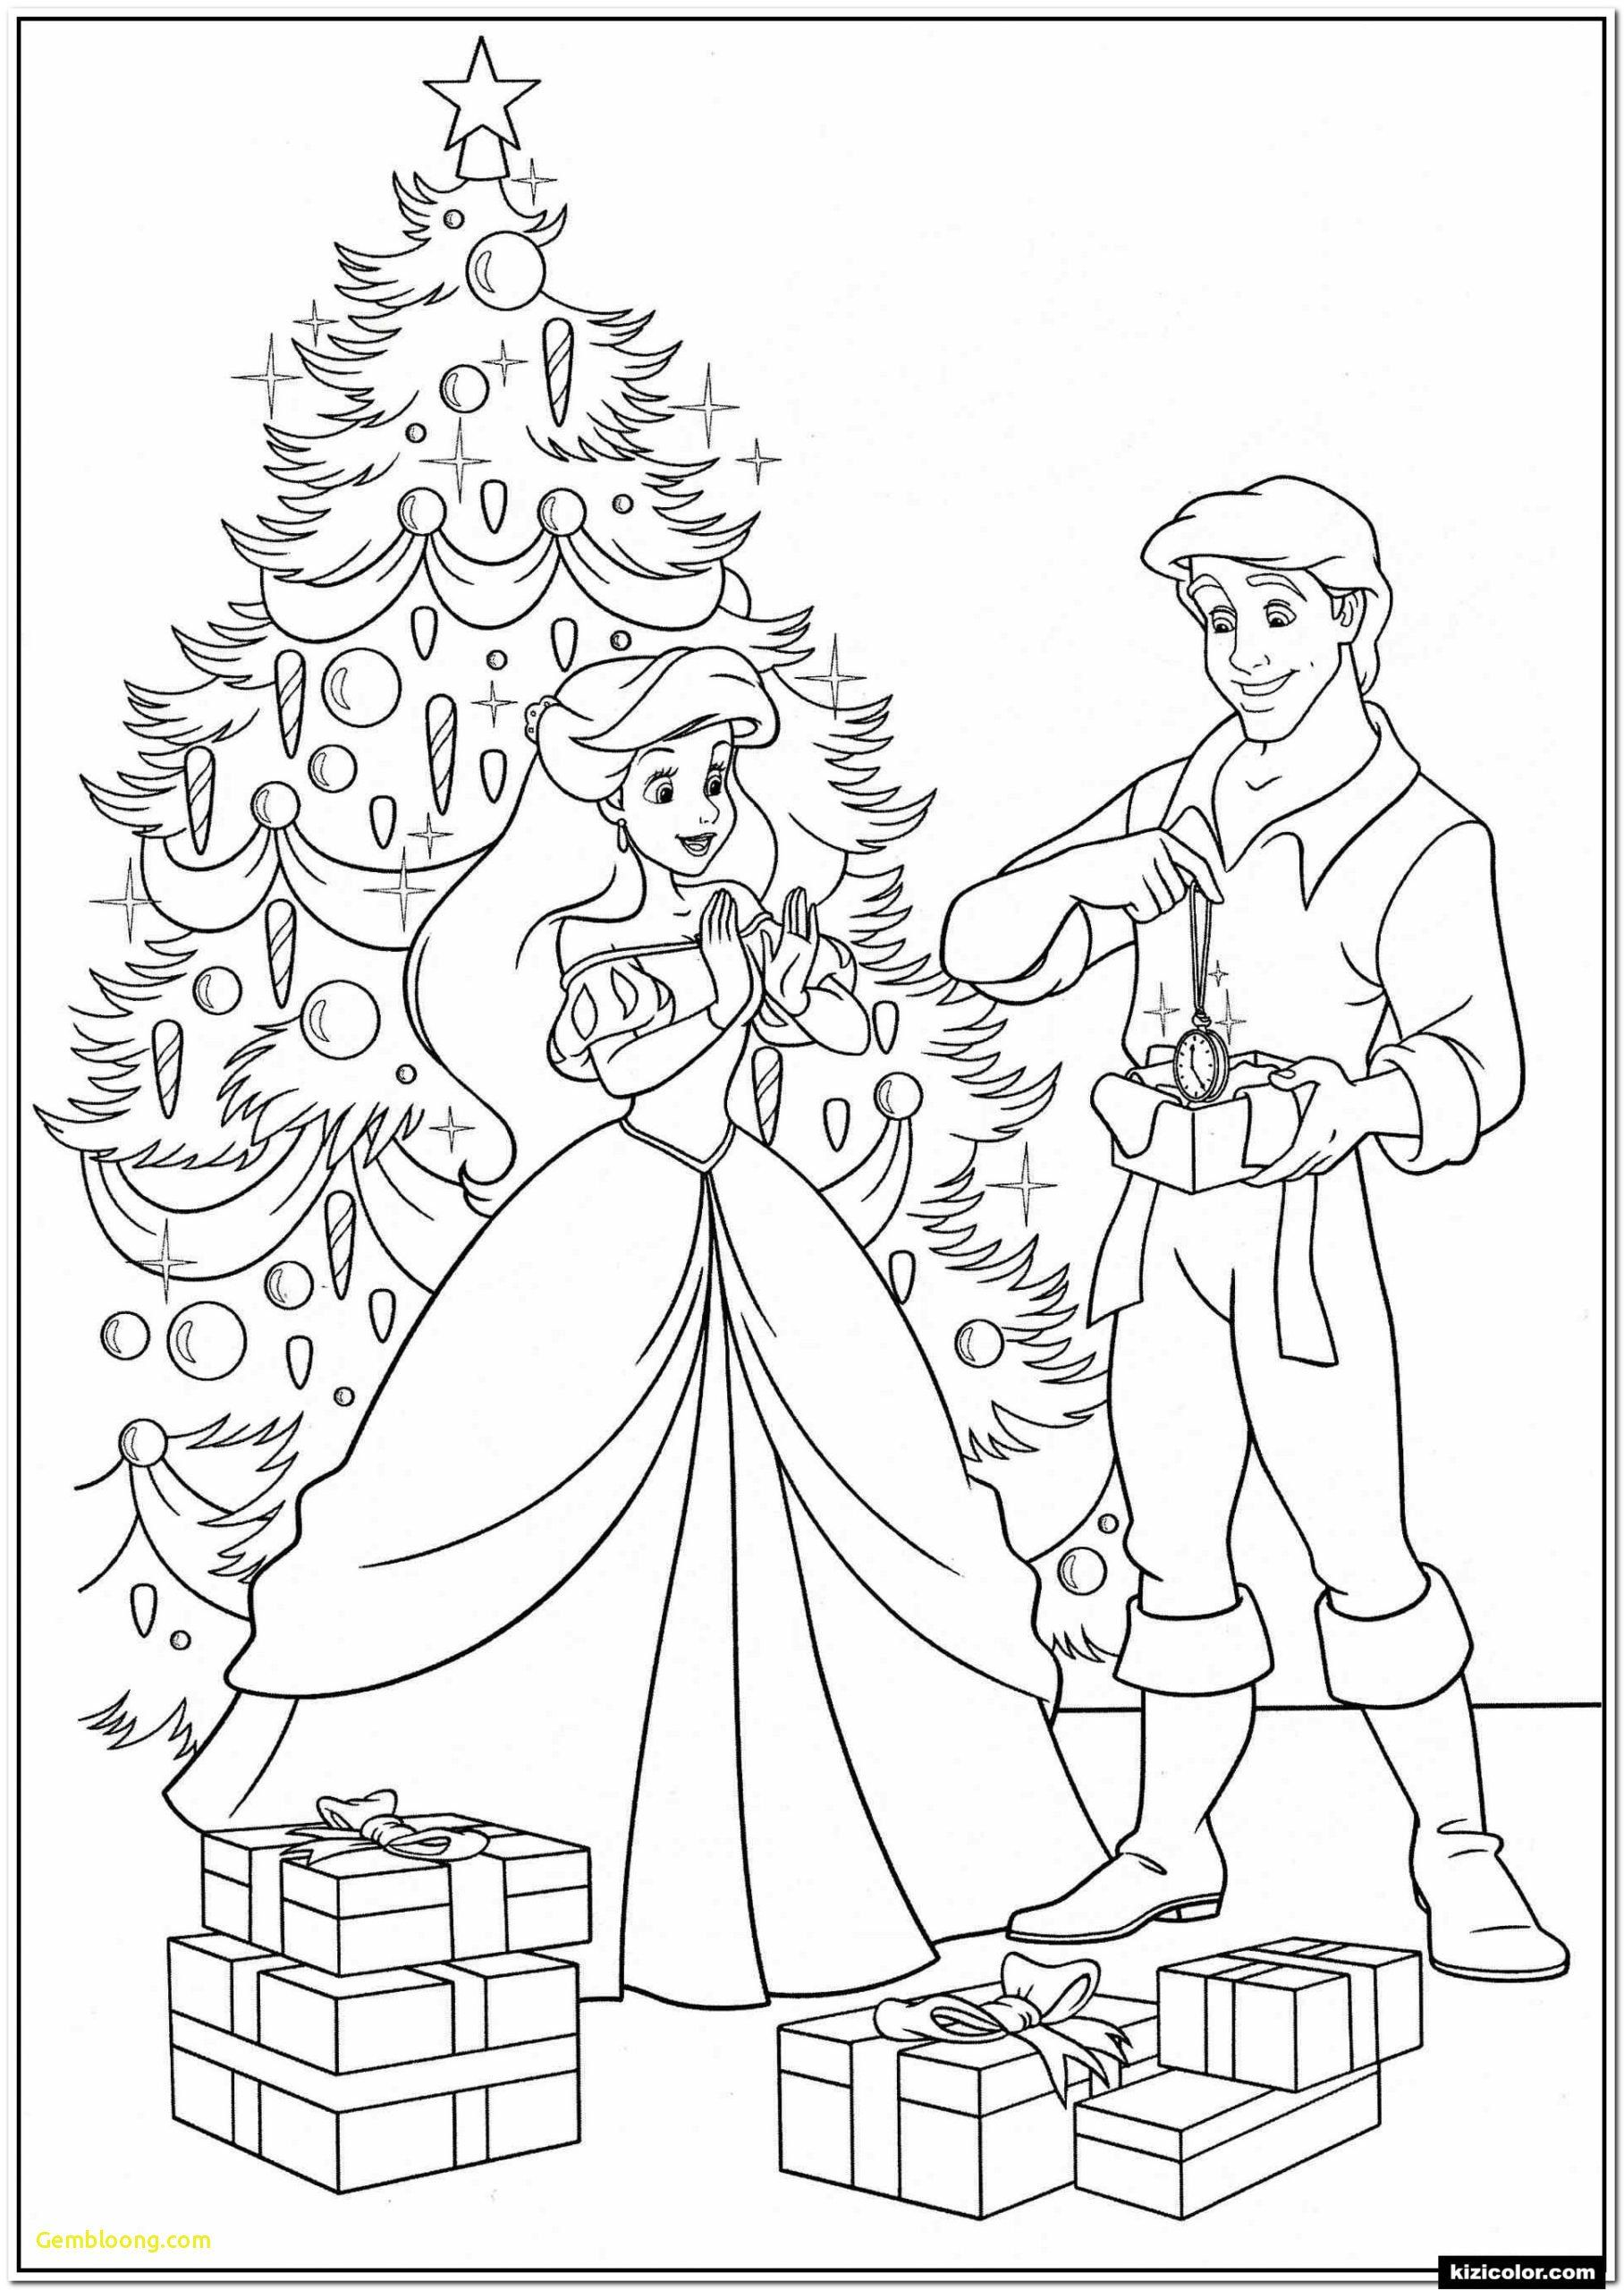 Stress Relief Coloring Pages Coloring Book Coloring Pages Fancy Nancy Fresh Stres Disney Princess Coloring Pages Mermaid Coloring Pages Princess Coloring Pages [ 2560 x 1816 Pixel ]